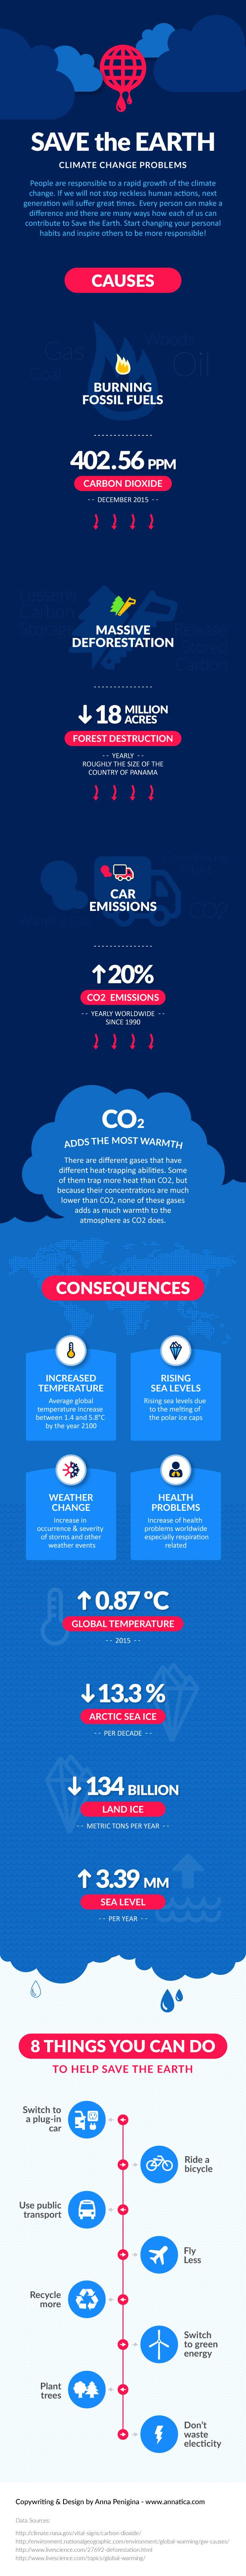 top ideas about save the earth environment global warming climate change save the earth infographic